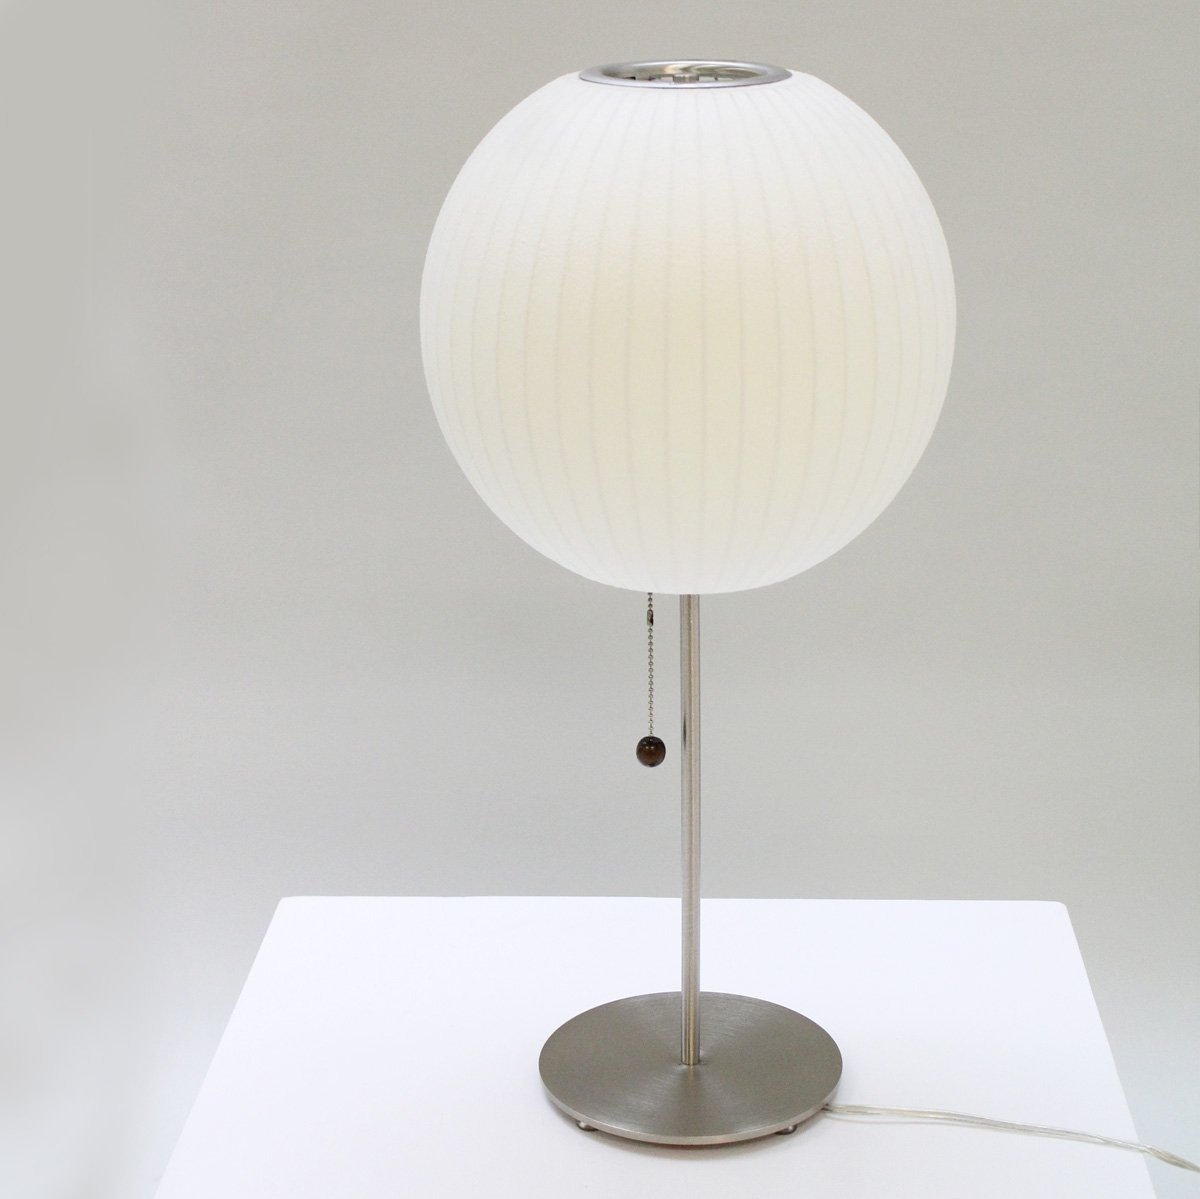 George Nelson Bubble Table Lamp By Modernica, 1990s